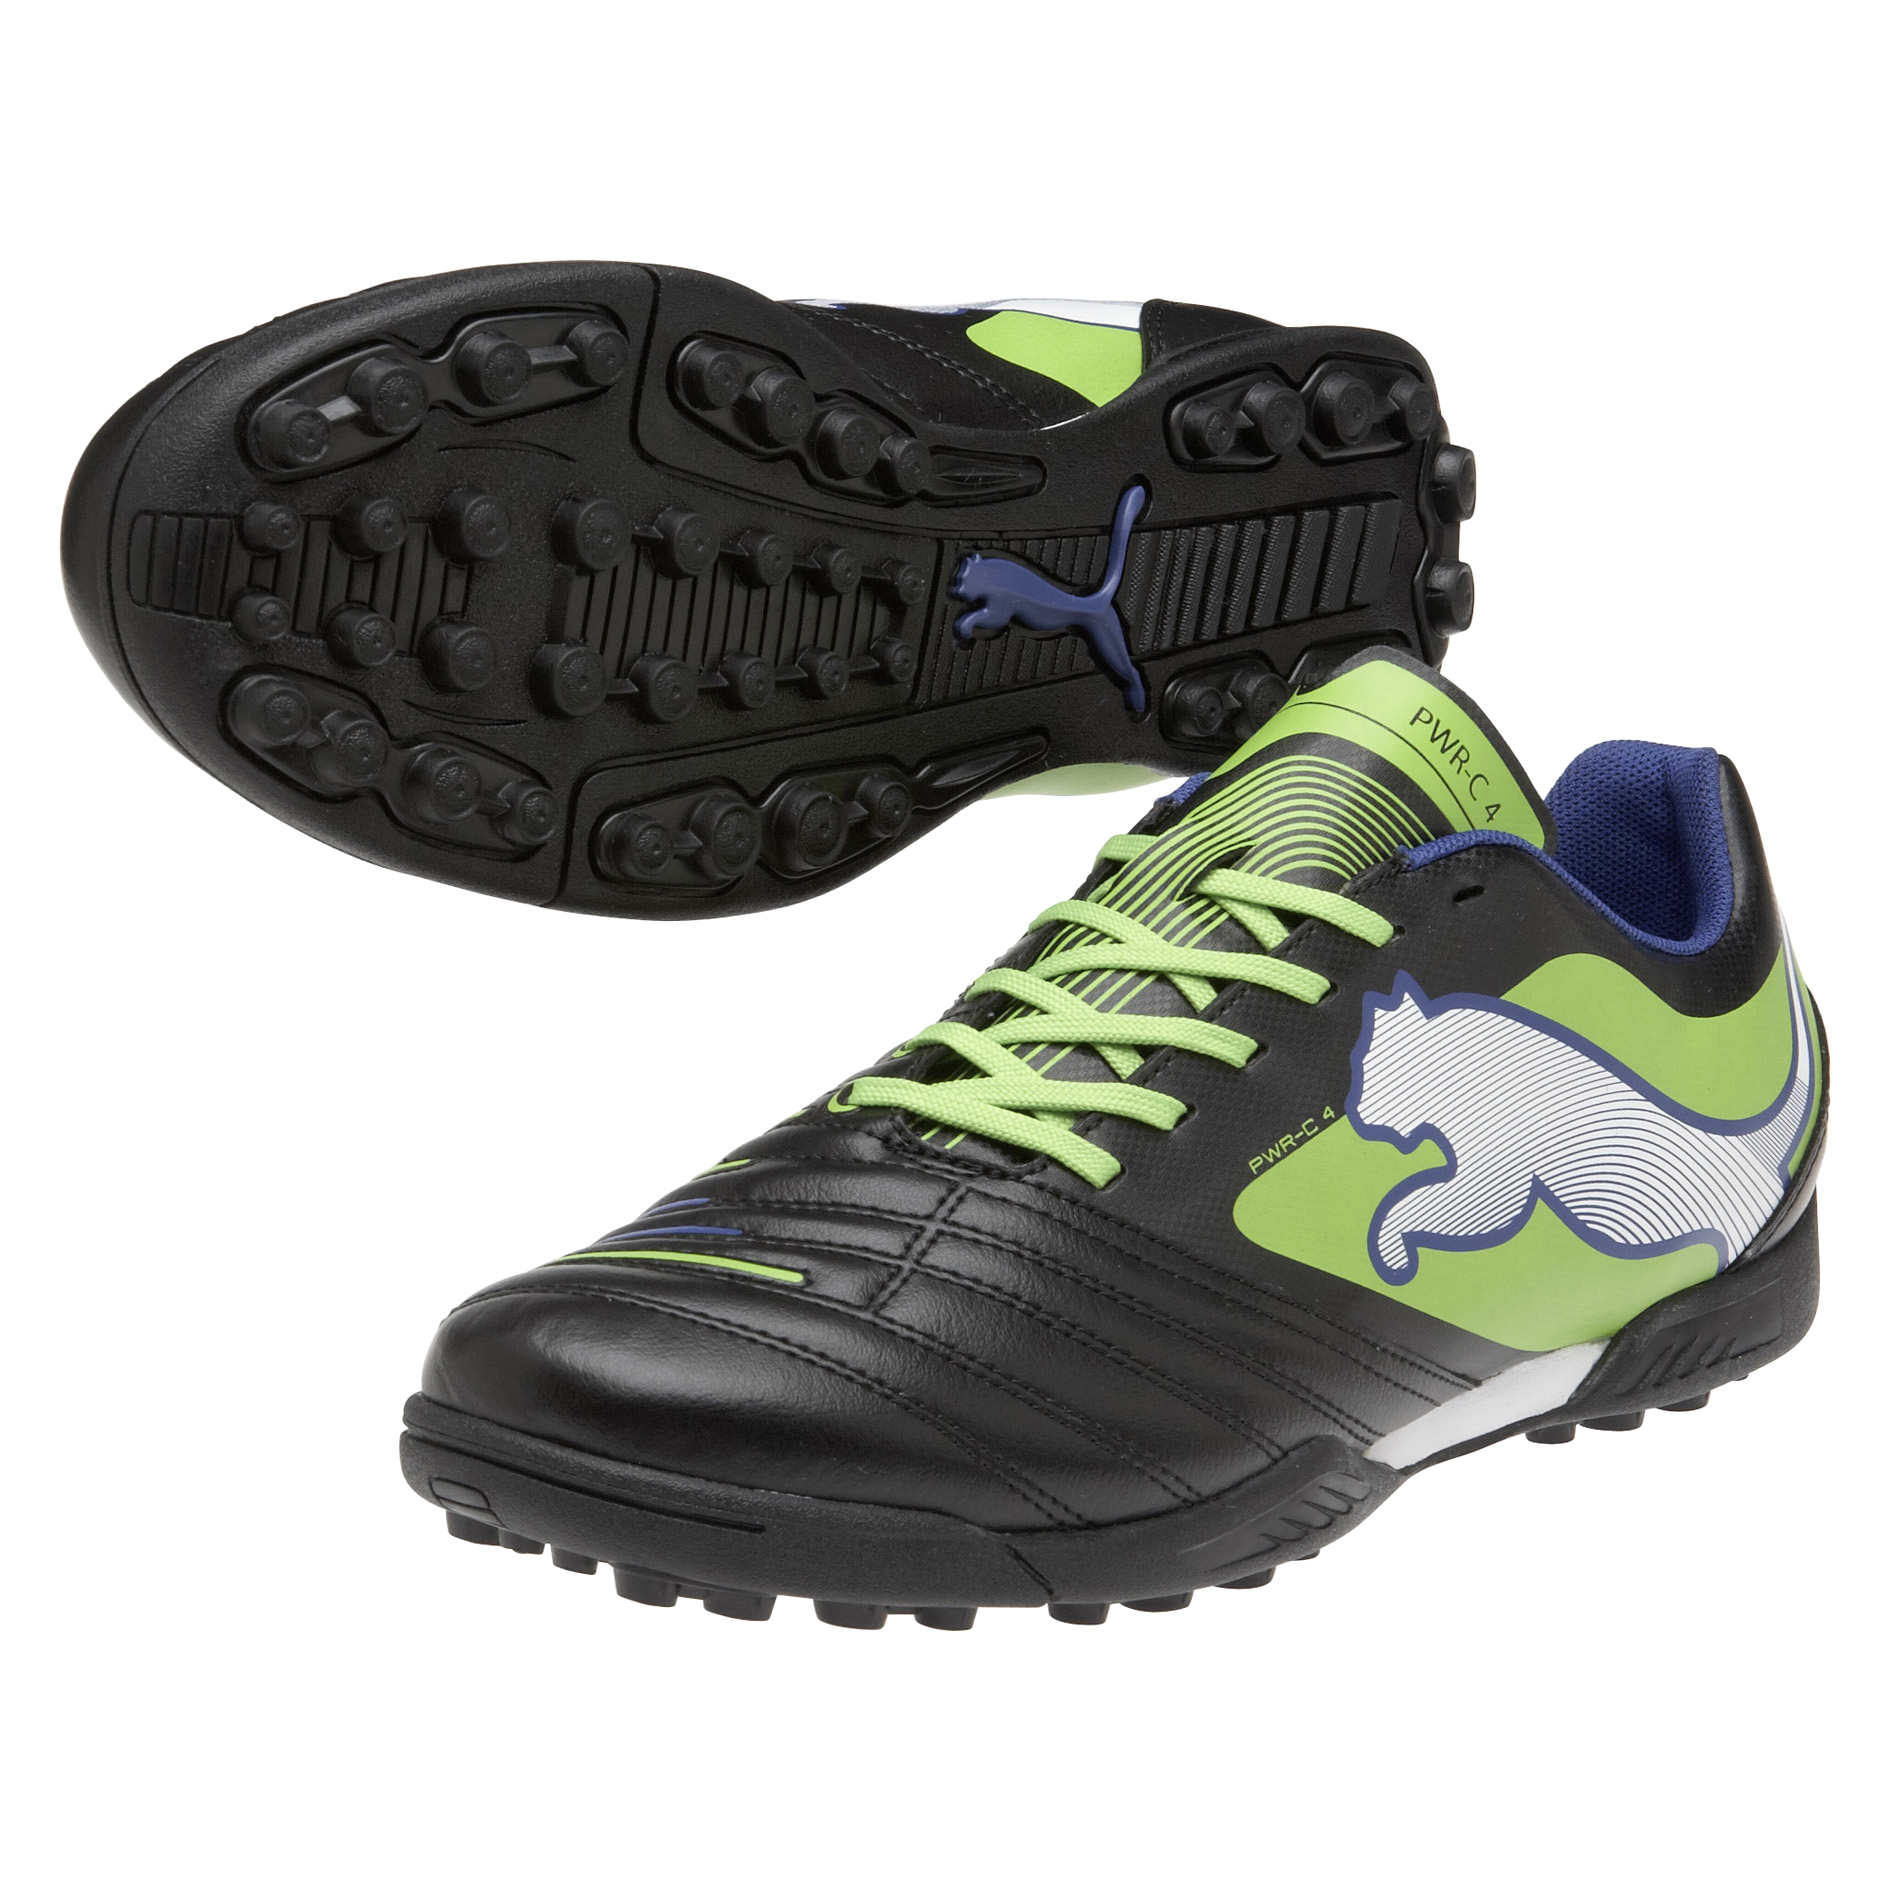 Puma Powercat 4 Astroturf Trainers - Black/Jasmin Green/Monaco Blue